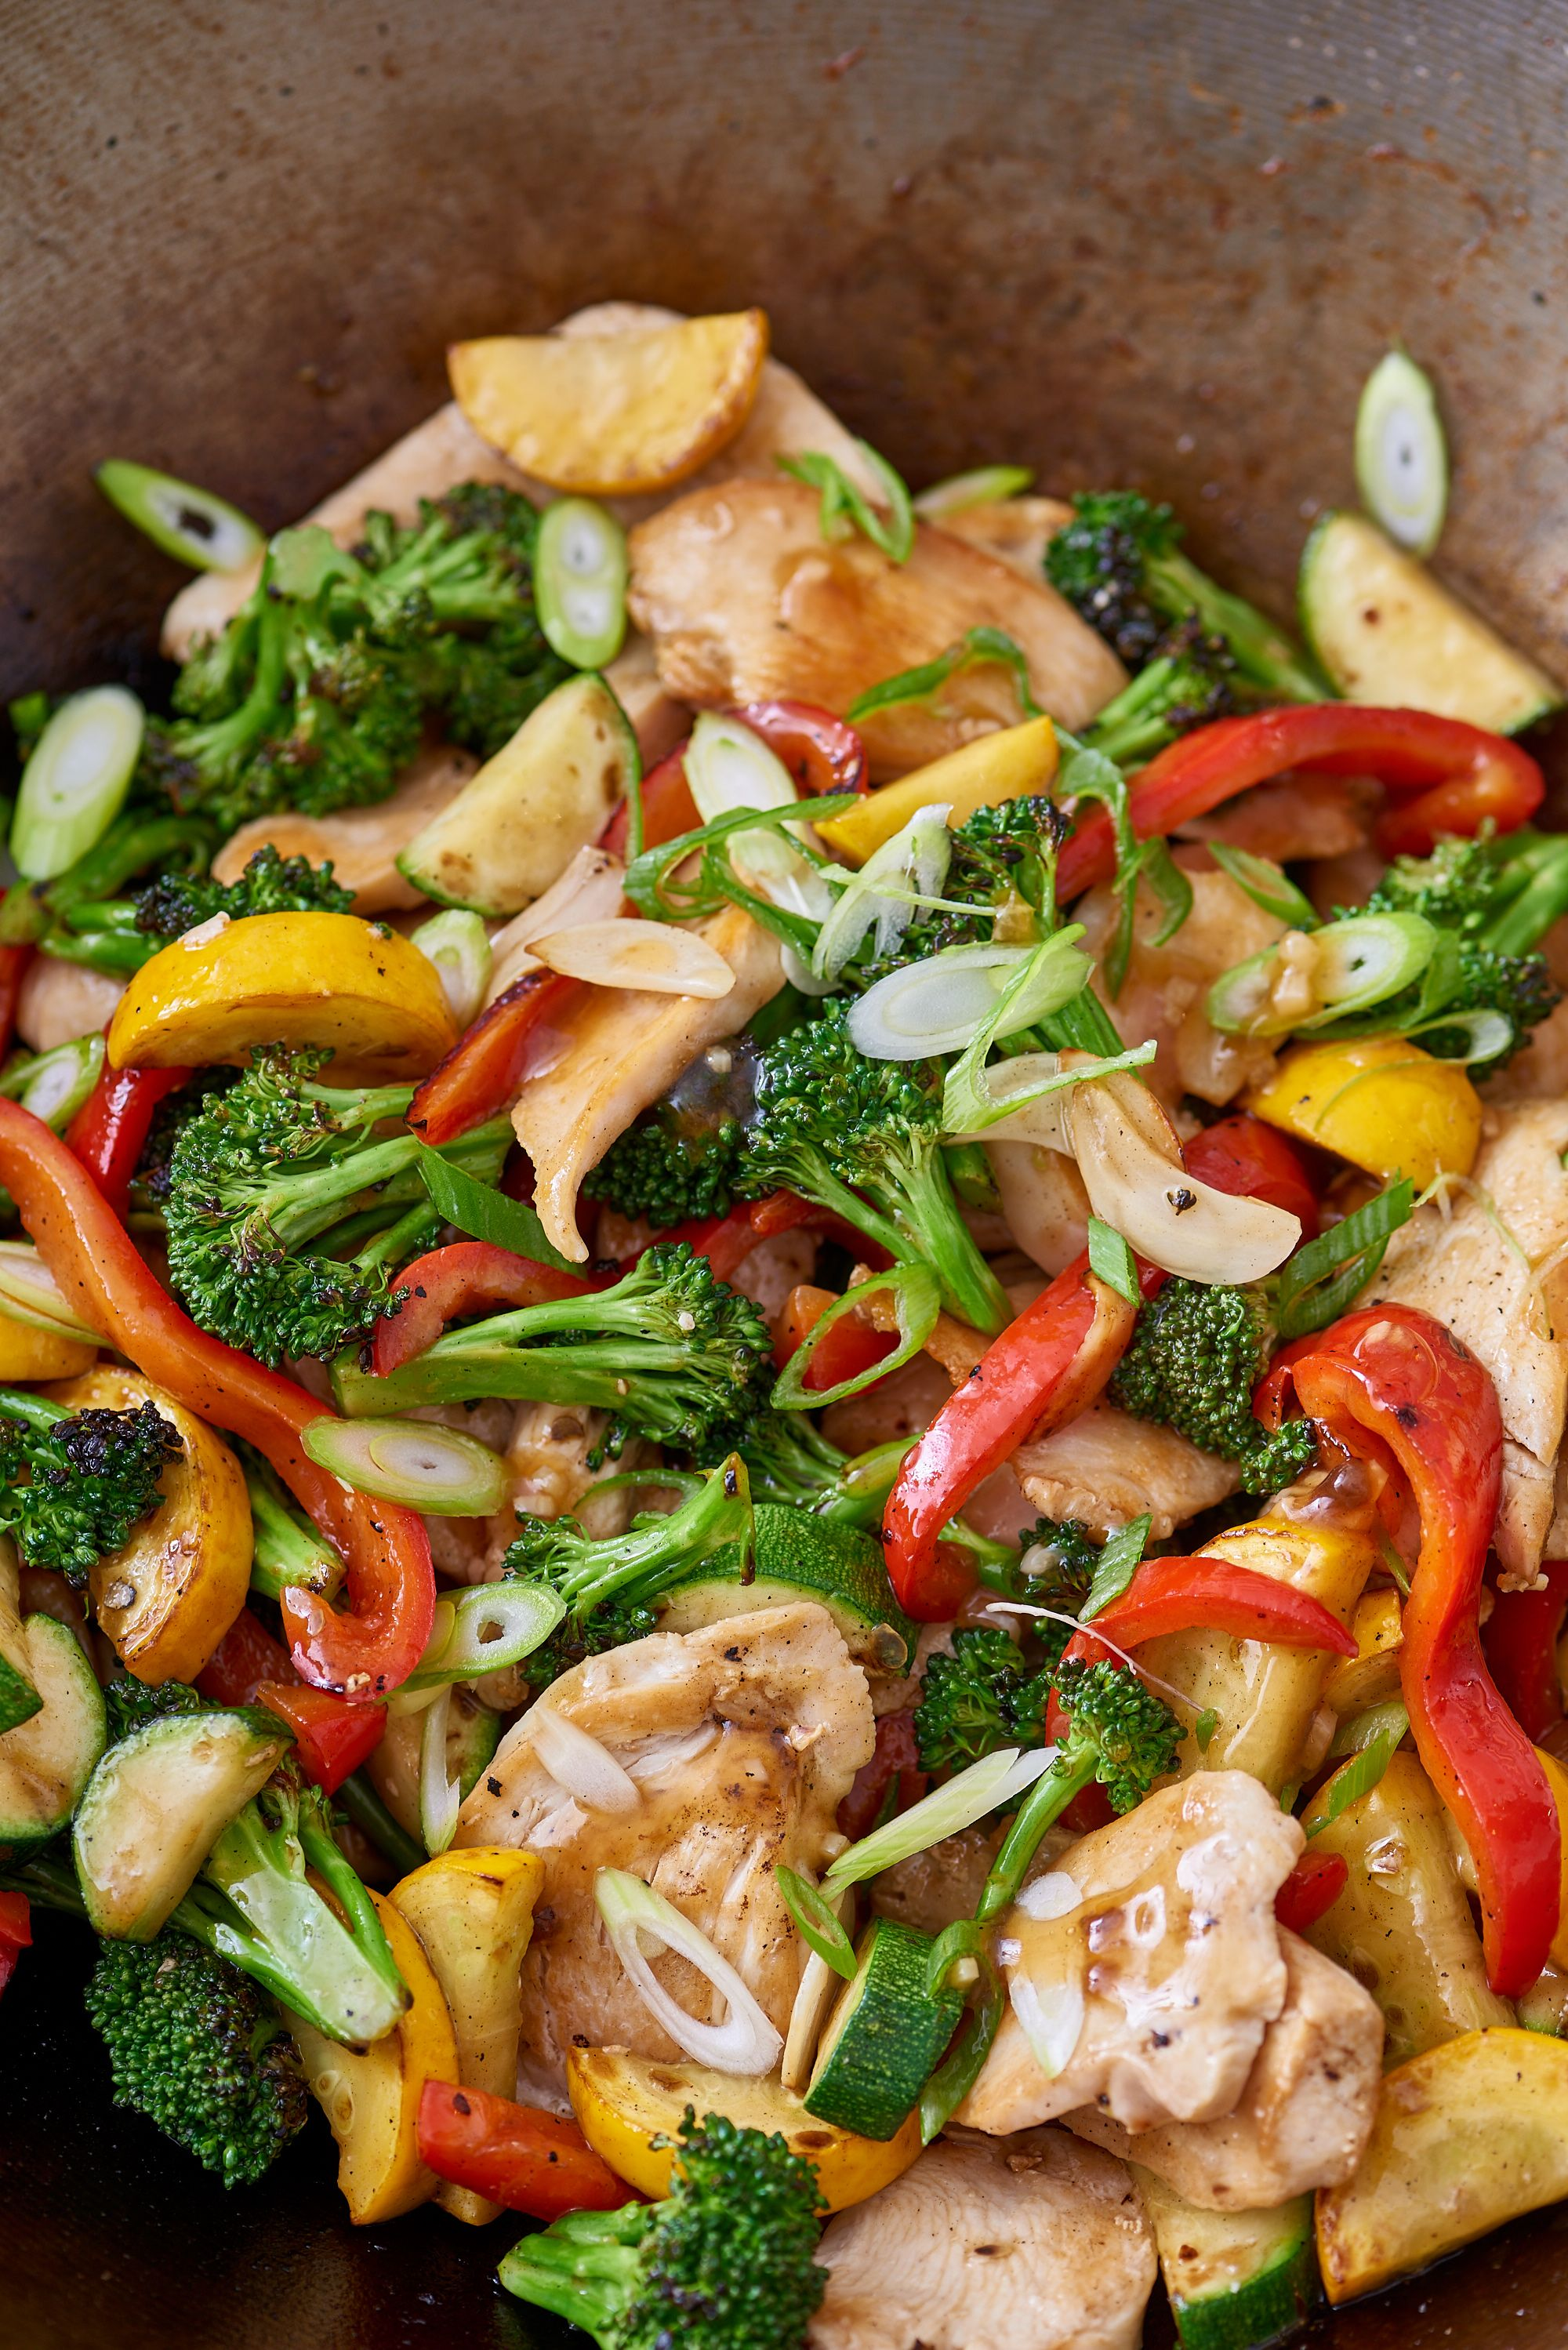 How to make stir fry with chicken and frozen vegetables